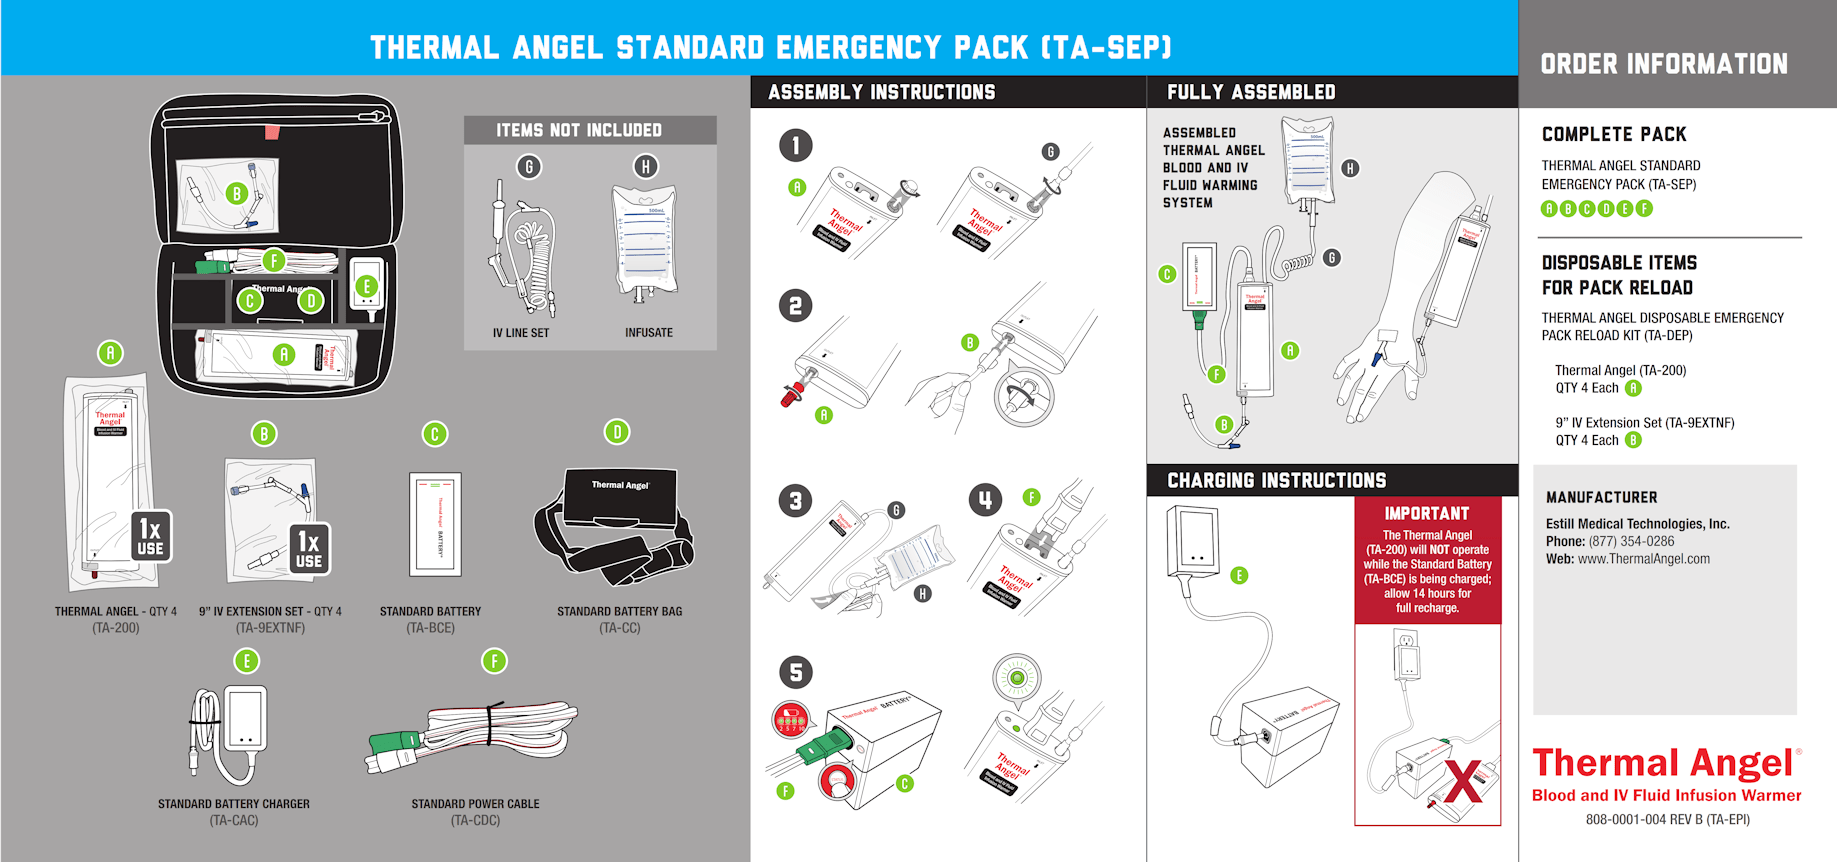 Thermal Angel Standard Emergency Pack Instructions